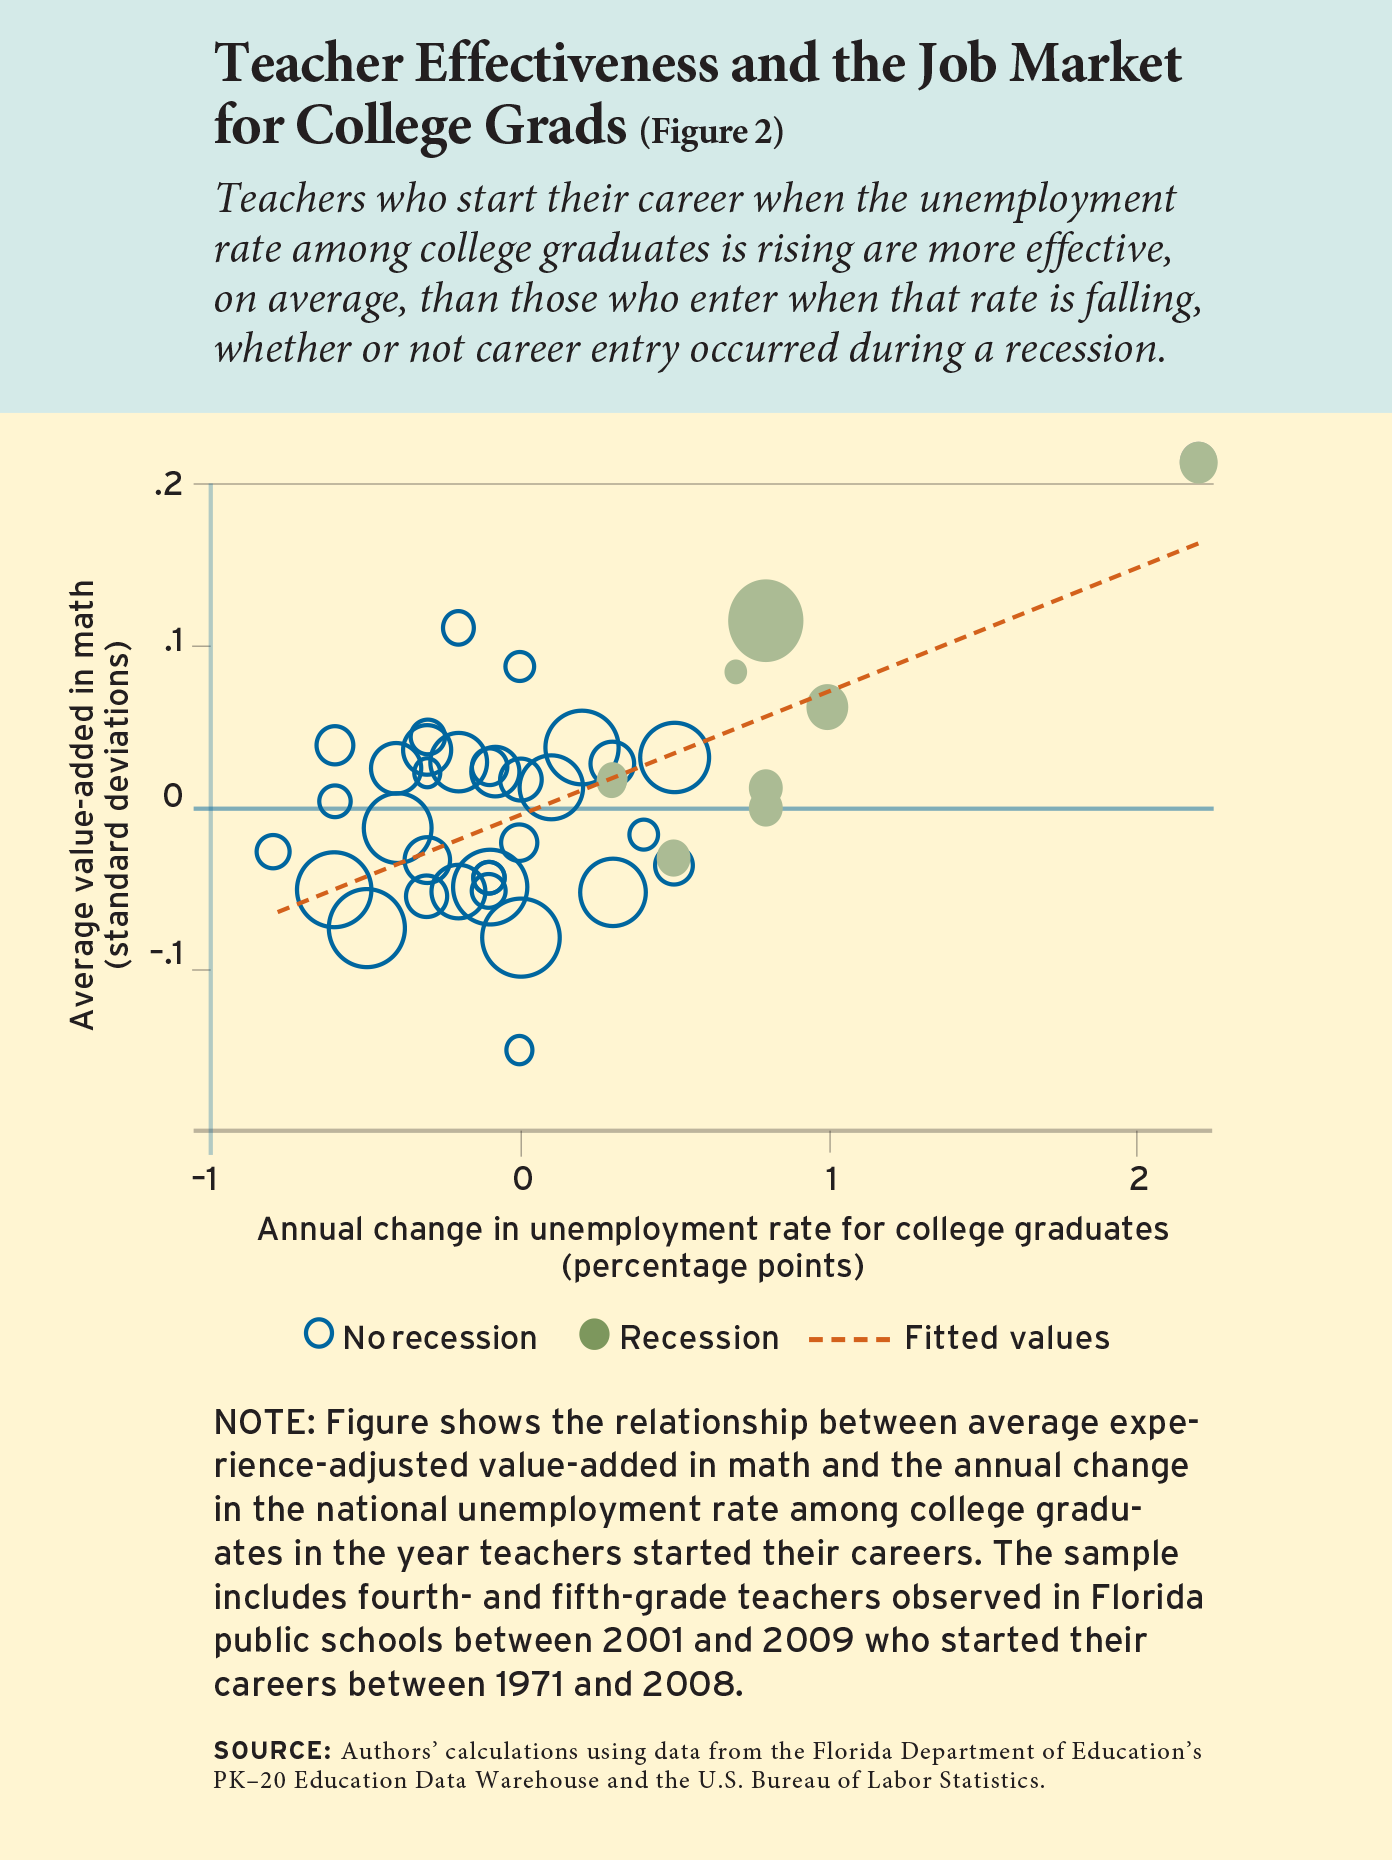 Figure 2: Teacher Effectiveness and the Job Market for College Grads